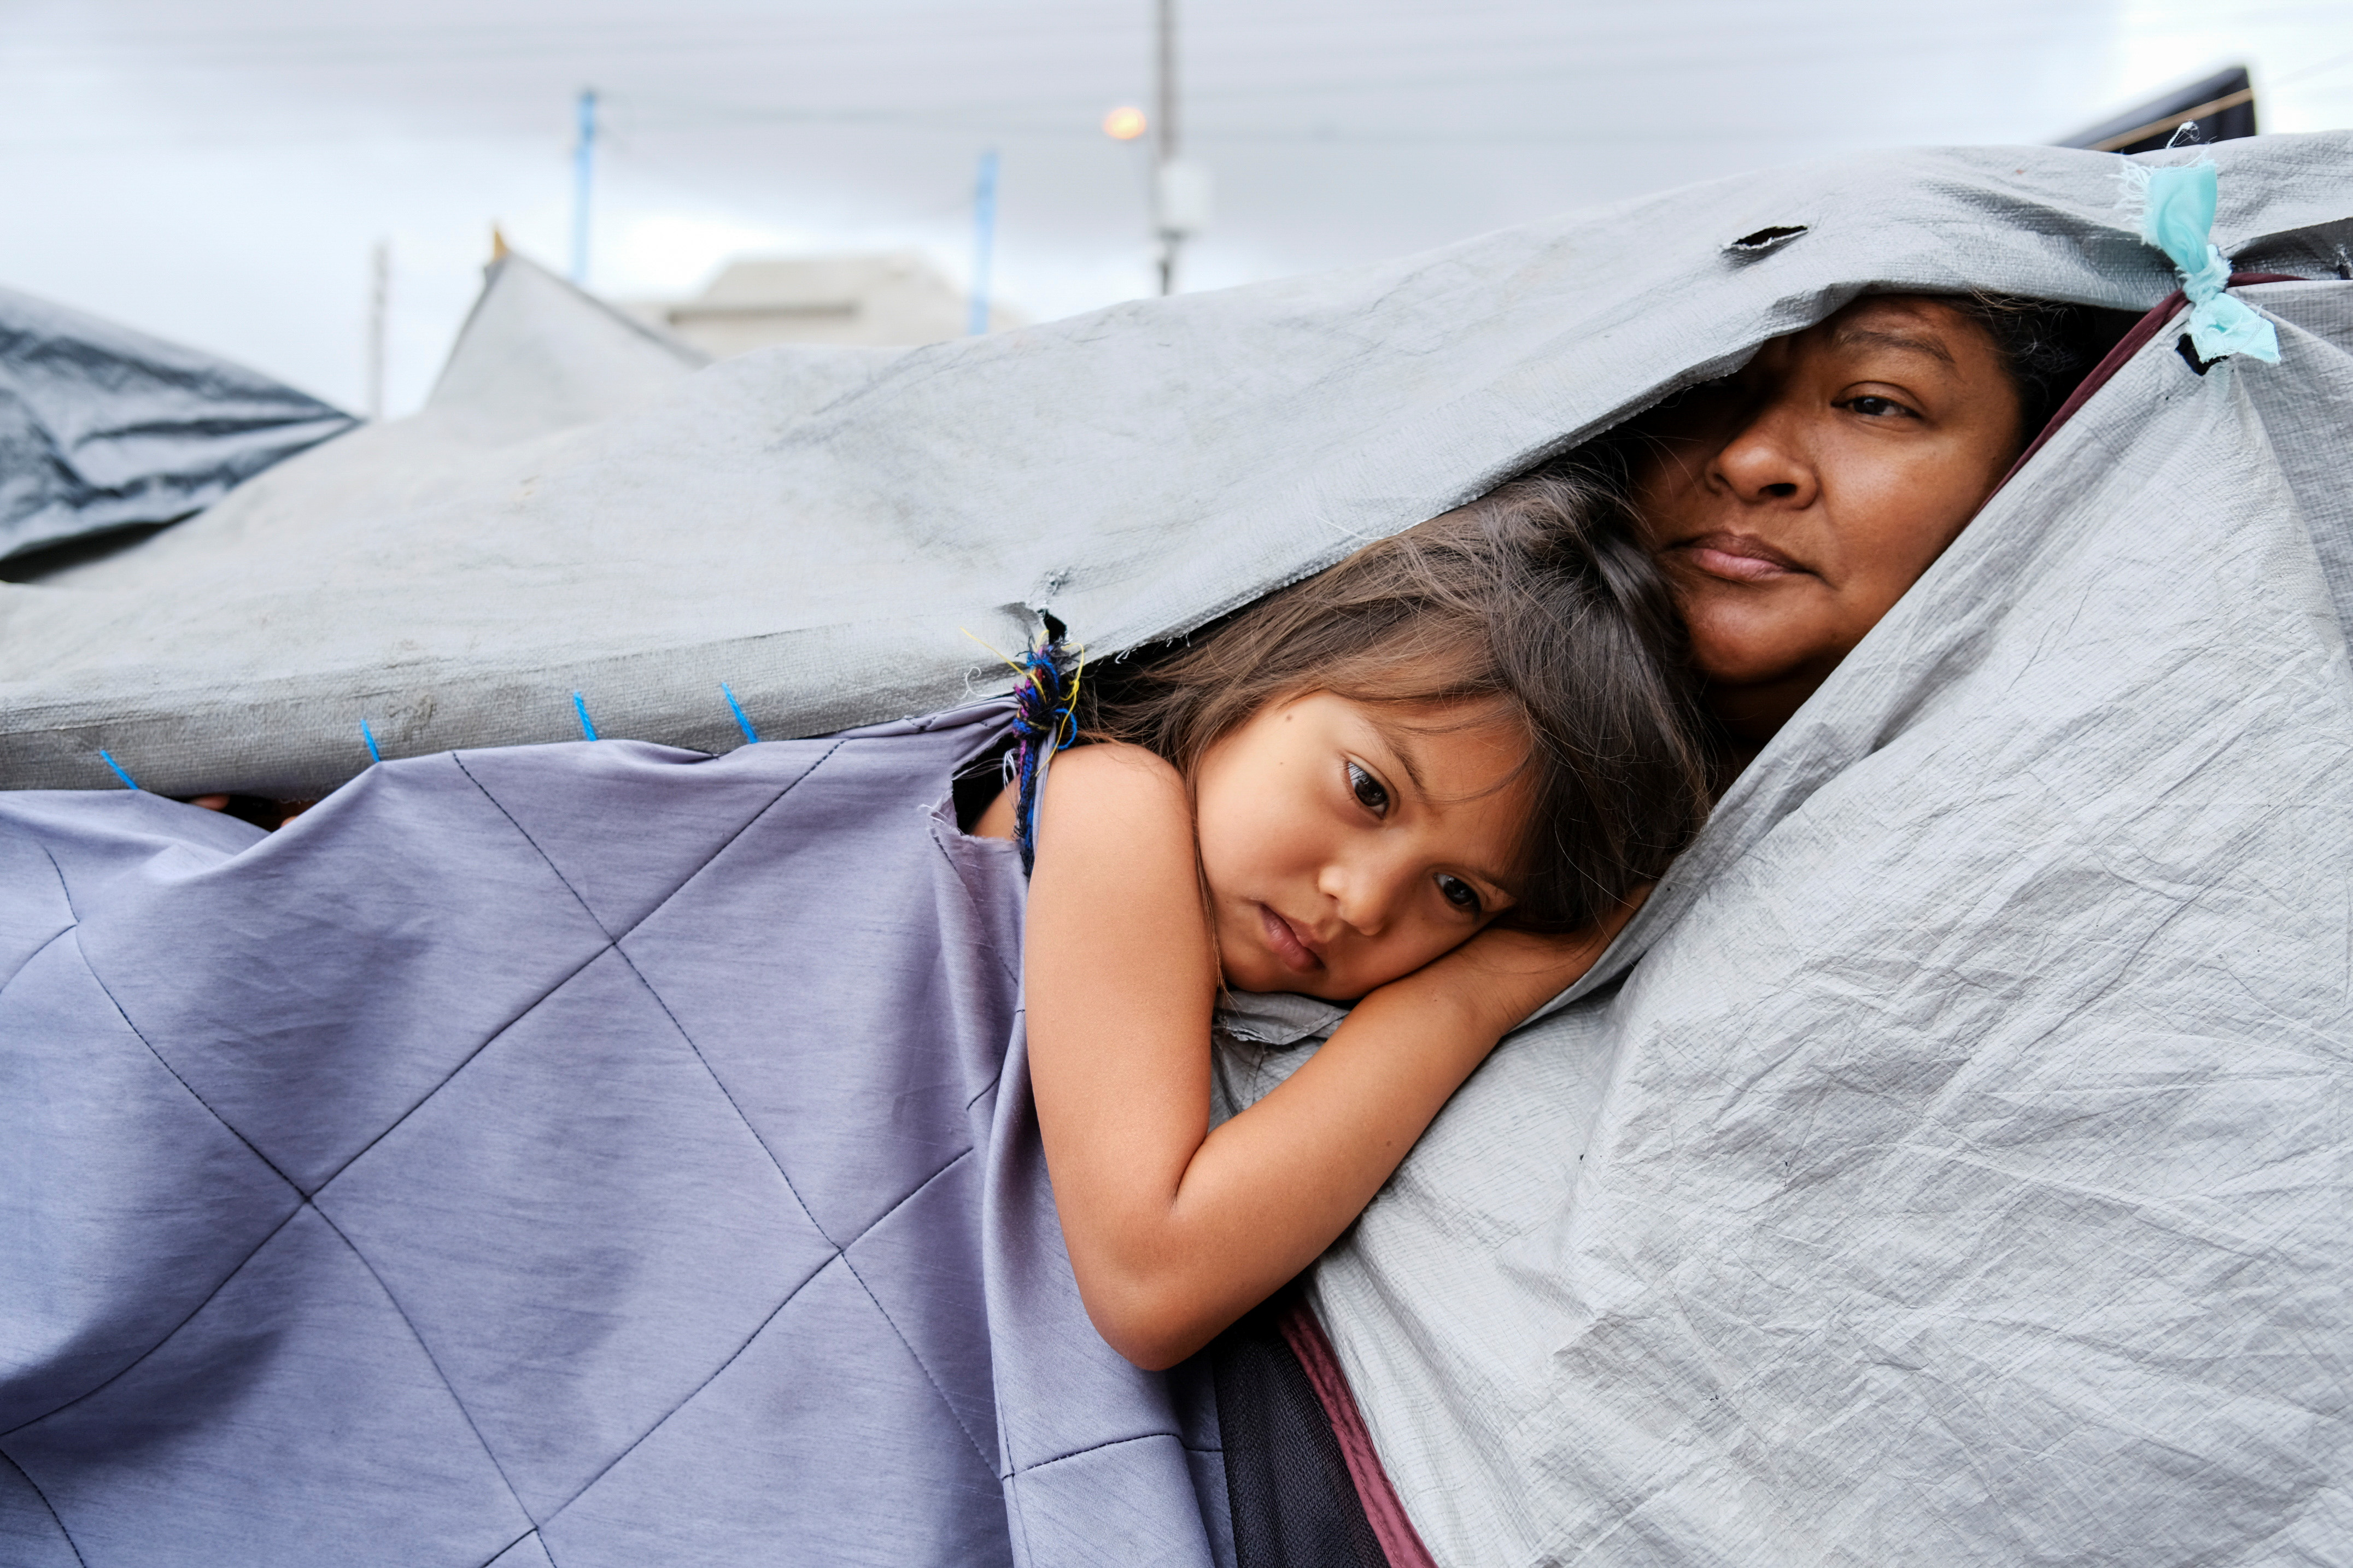 Honduran migrants Kami, 5, and her aunt Mariana listen as other migrants discuss hygiene norms within the migrant camp, at a makeshift camp at the El Chaparral border port of entry with the U.S., in Tijuana, Mexico April 22, 2021. Picture taken April 22, 2021. REUTERS/Toya Sarno Jordan